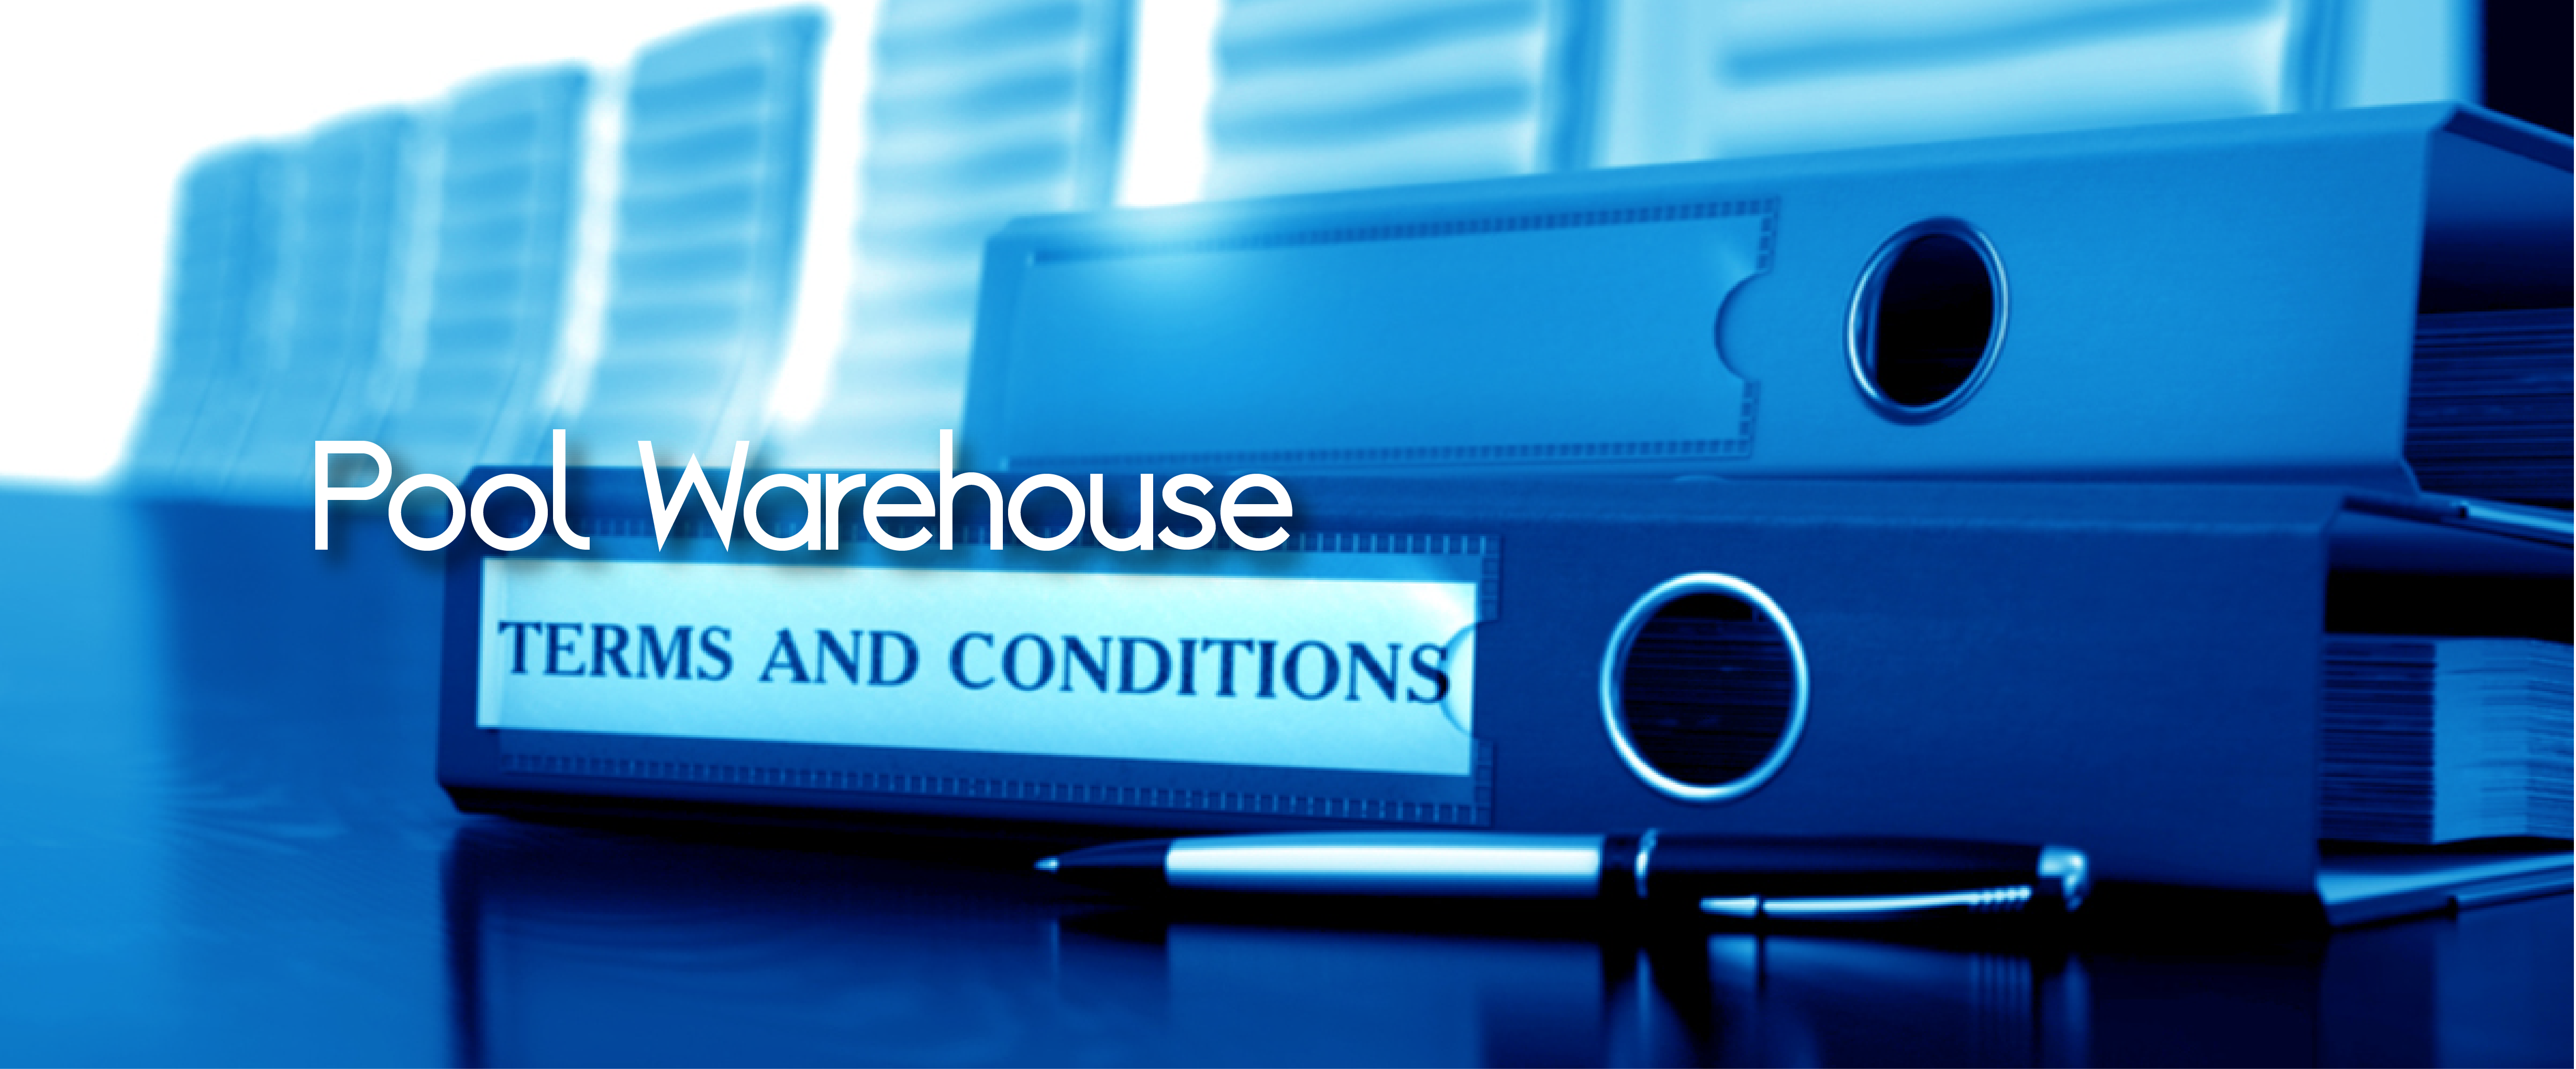 Pool Warehouse Terms And Conditions